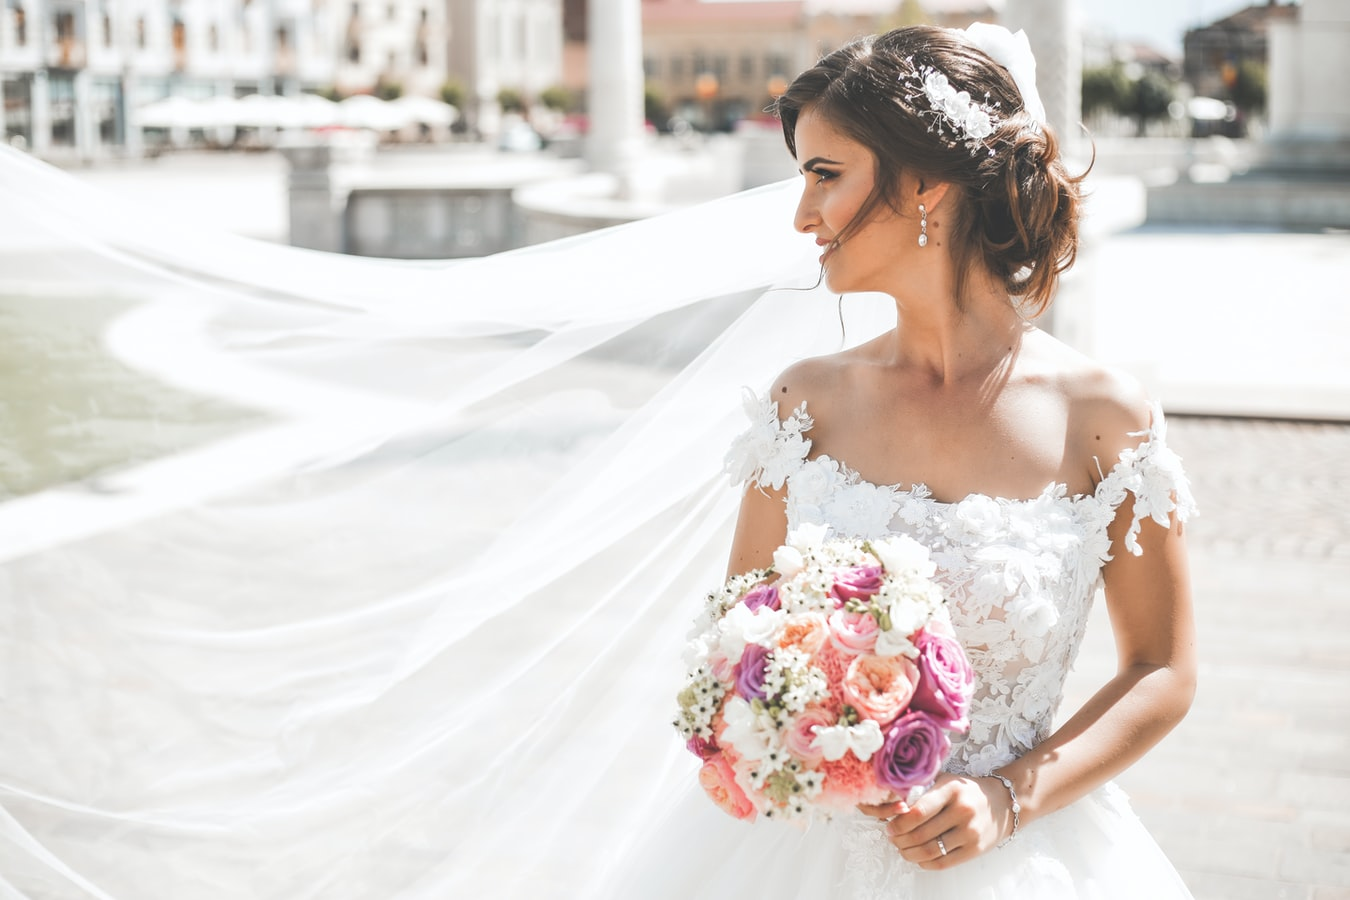 7 Bridal Accessories You'll Need on Your Wedding Day